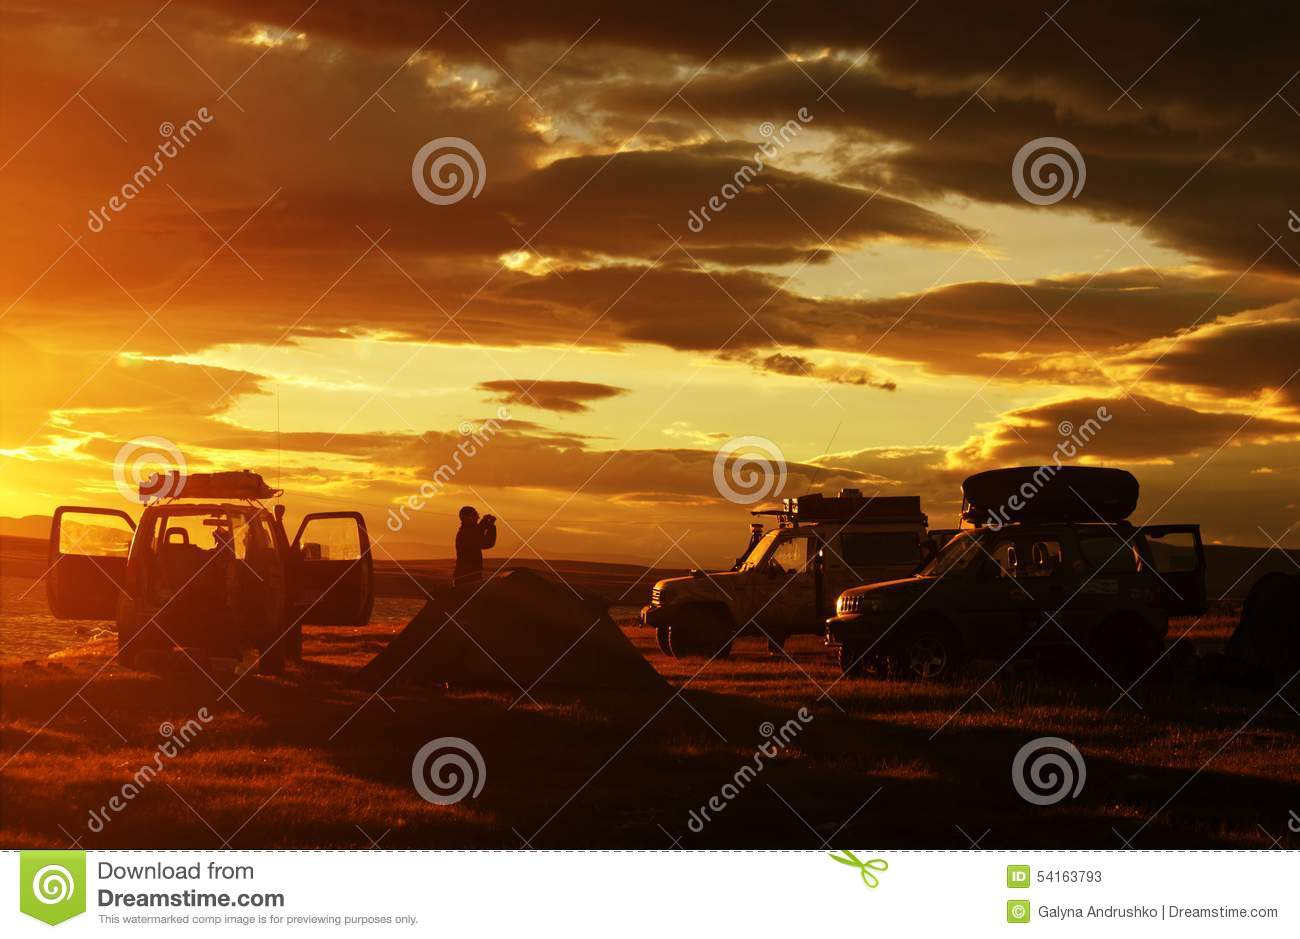 Car in expedition